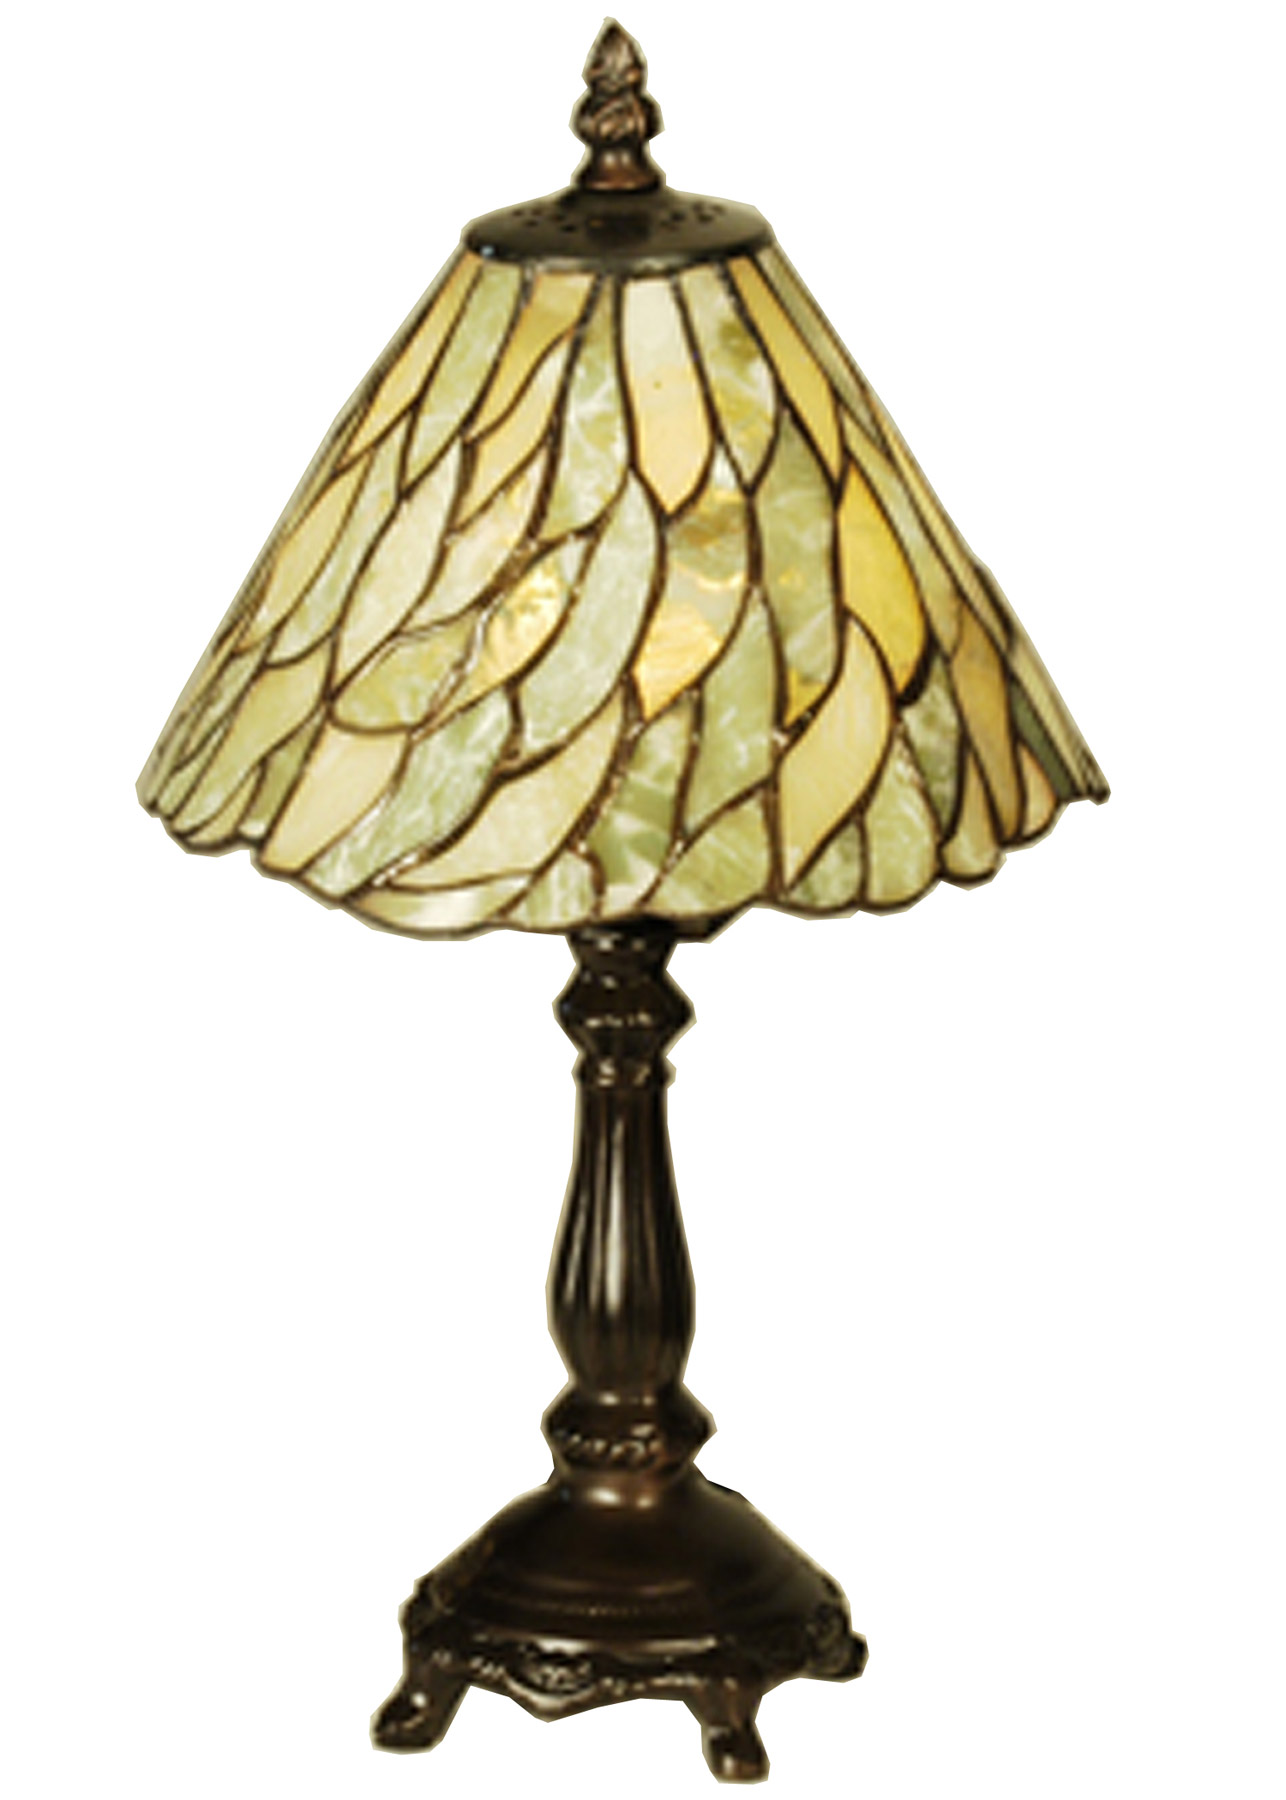 home lamps table lamps accent lamps meyda 103041. Black Bedroom Furniture Sets. Home Design Ideas